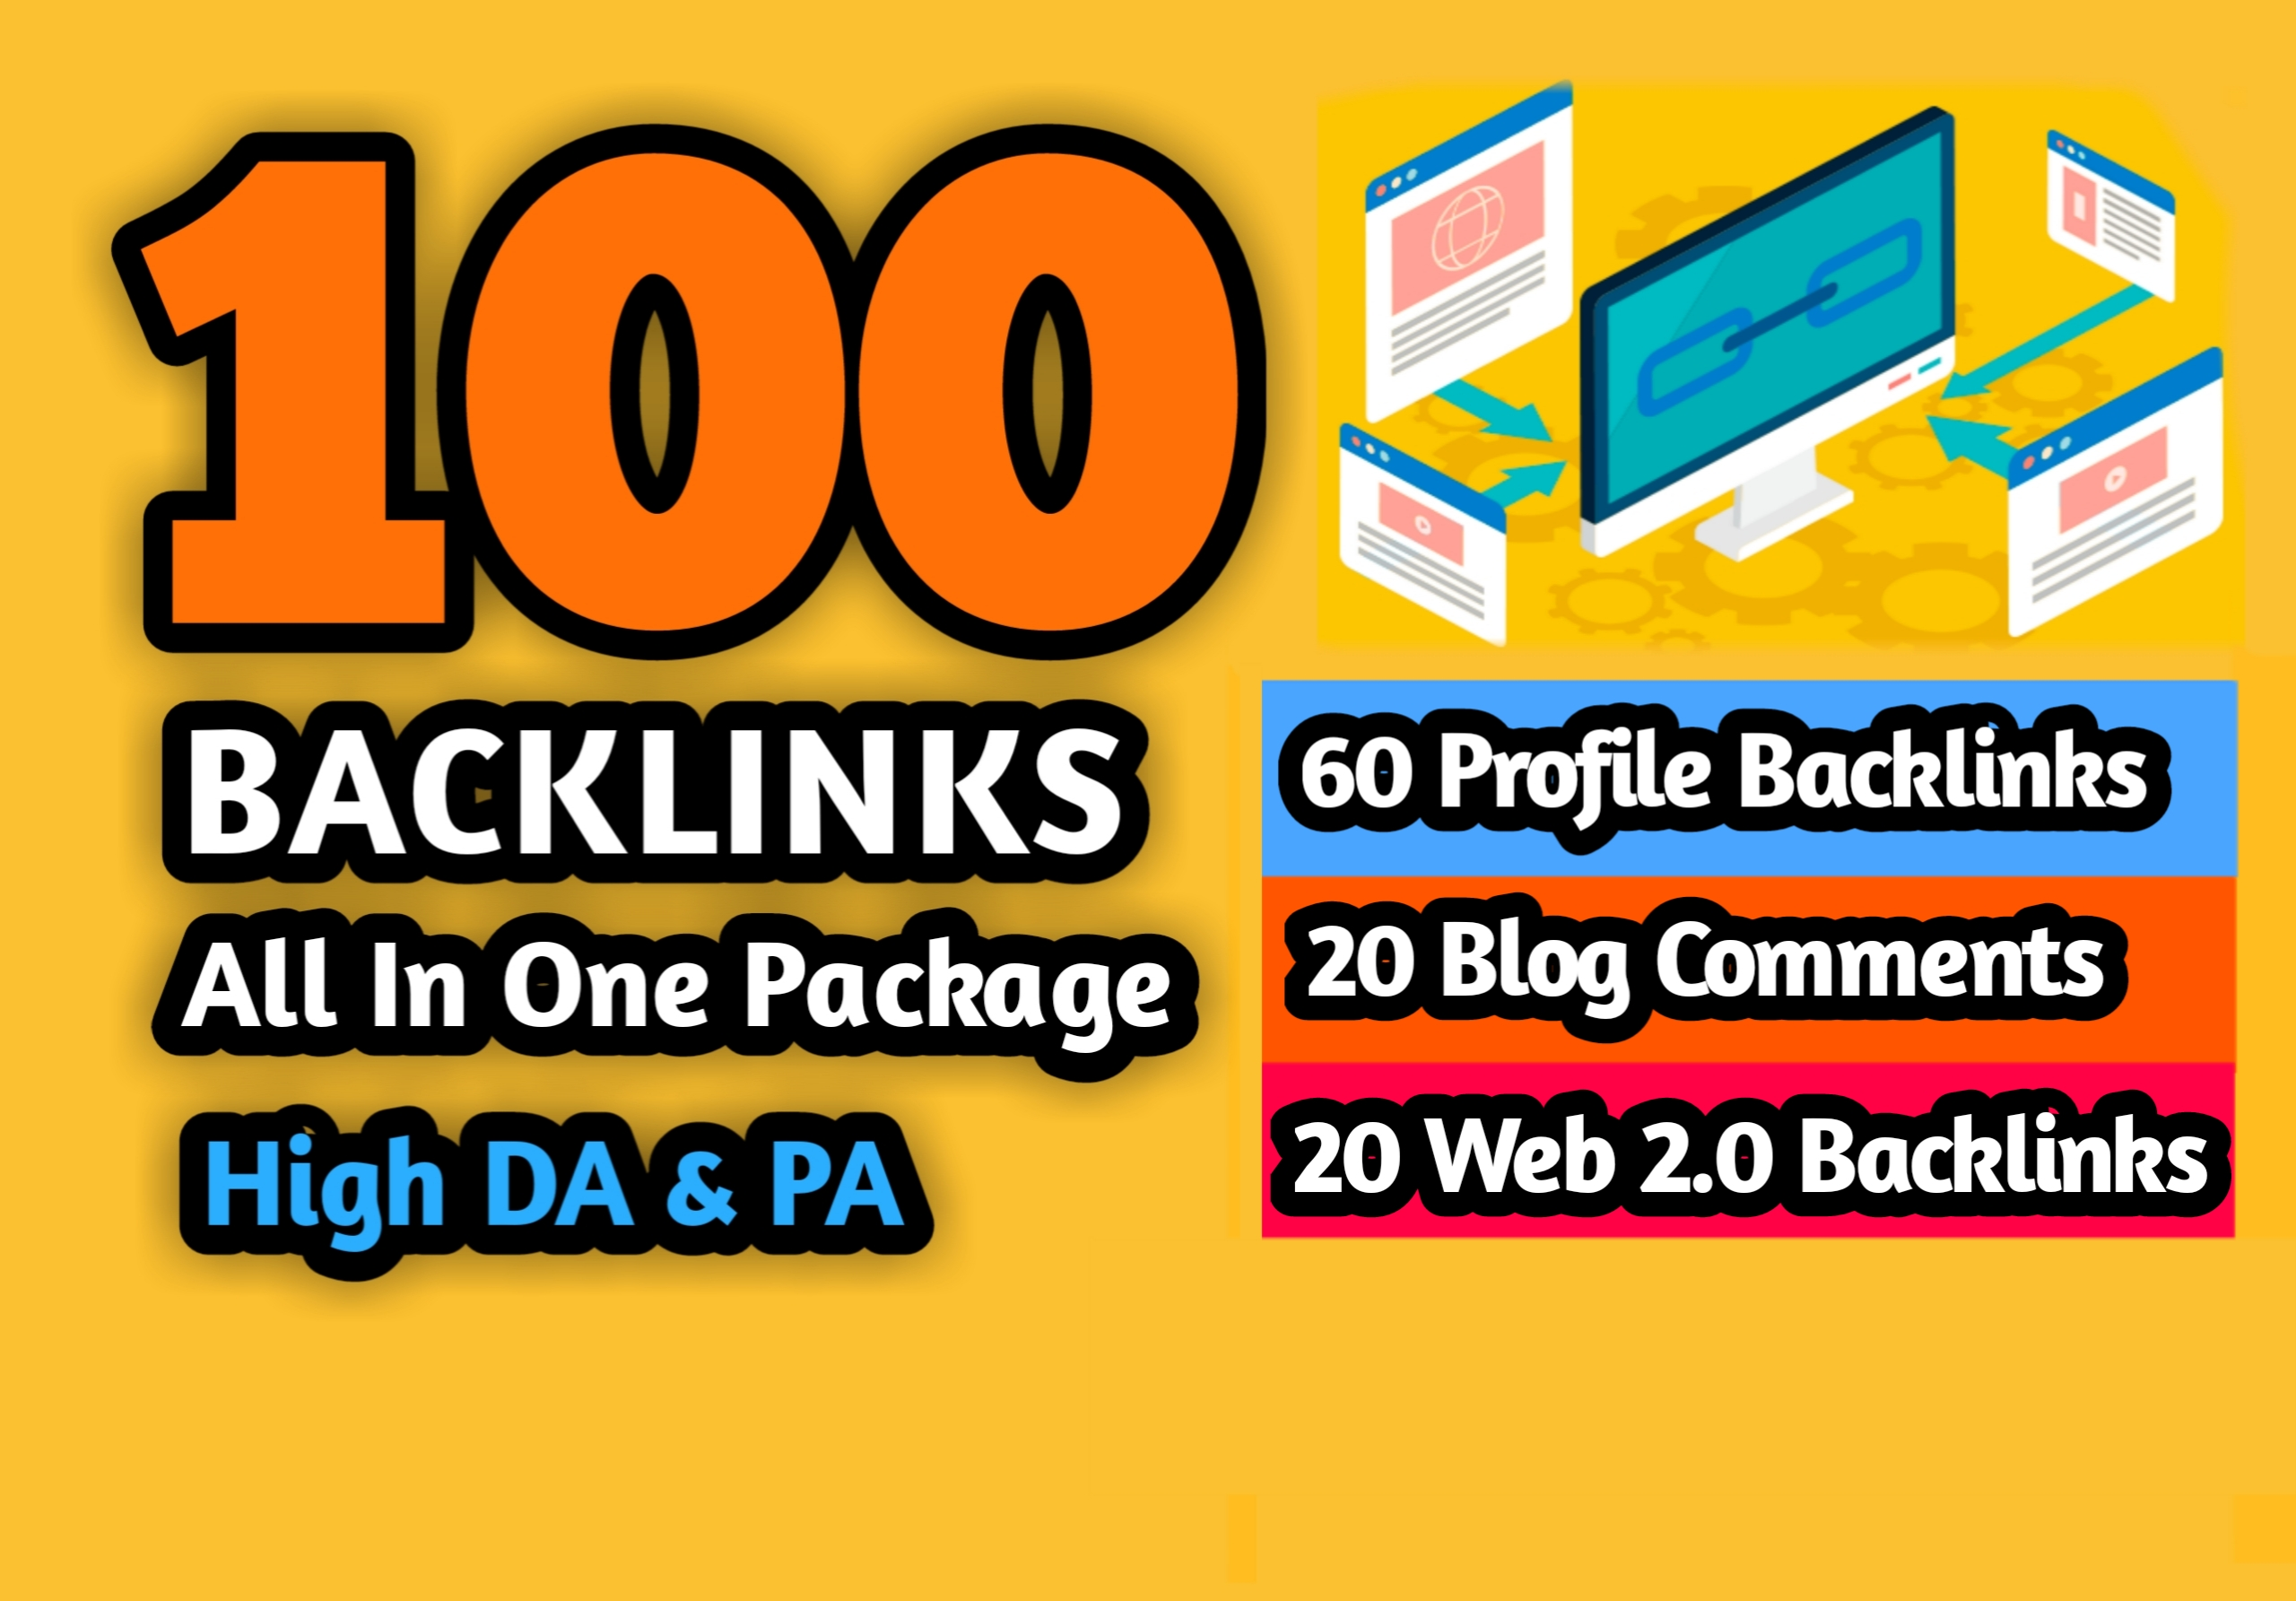 60 Profile Backlinks,  20 Blog Comments,  20 Web 2.0 Backlinks